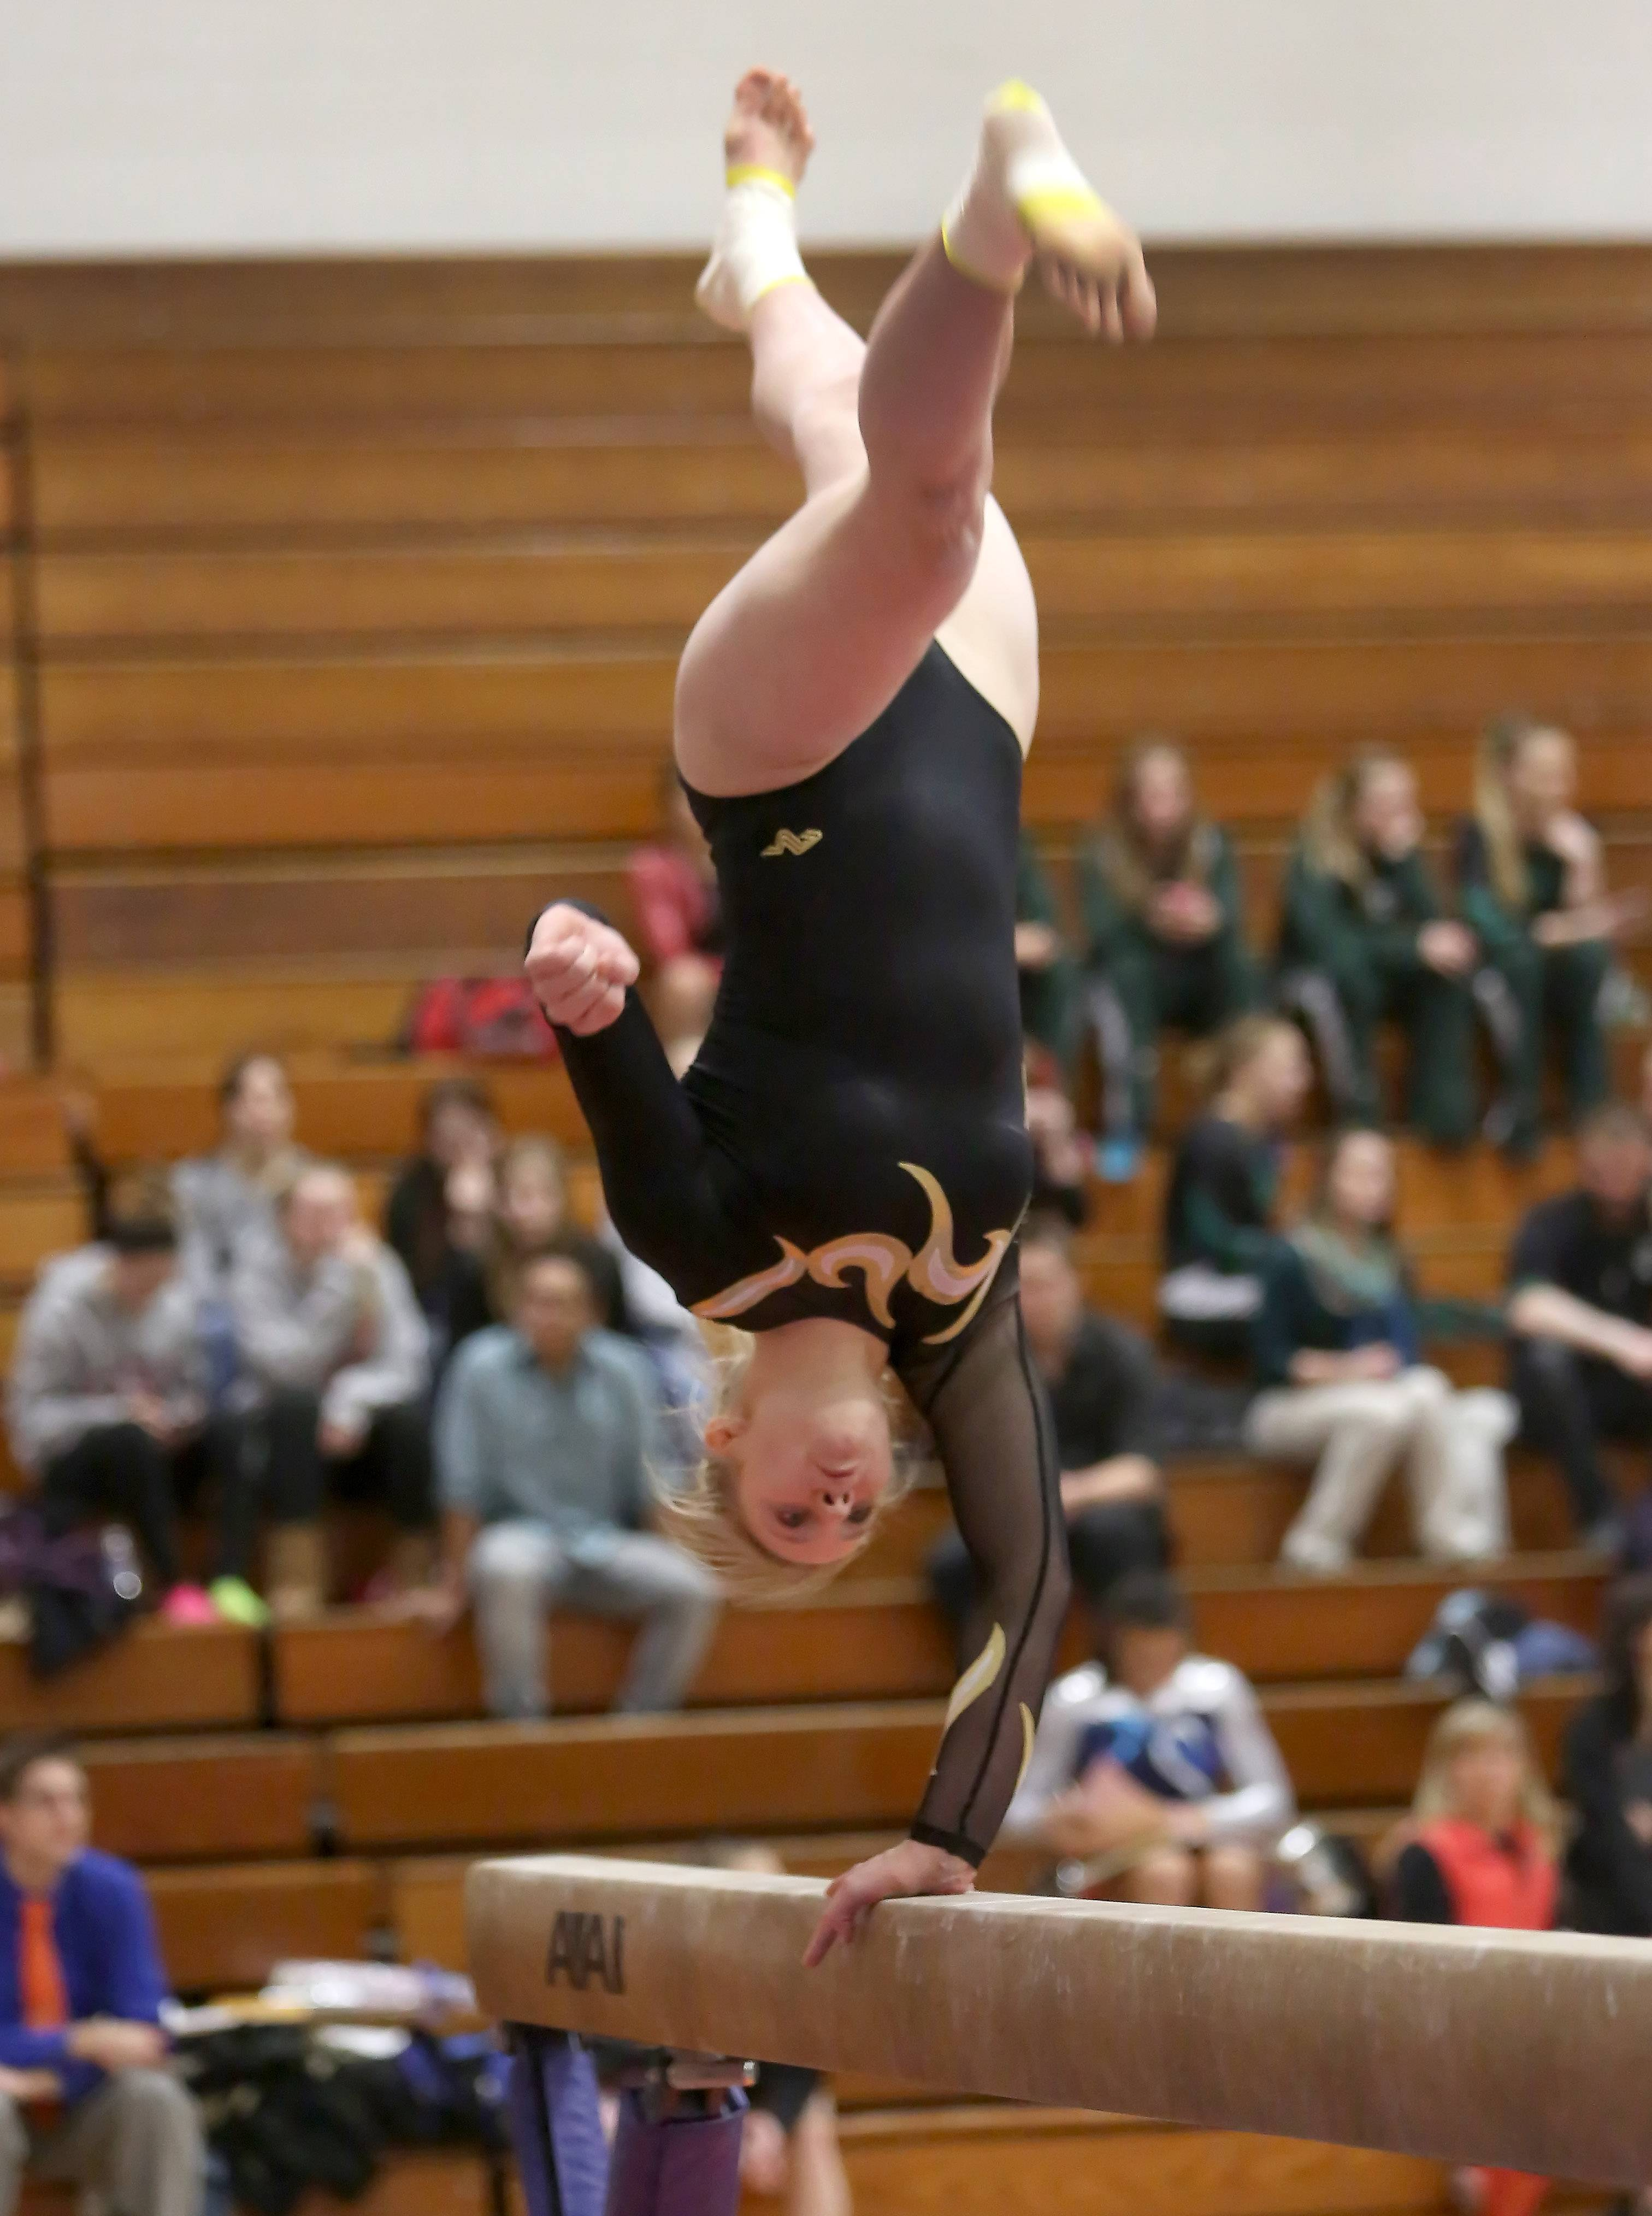 Allison Wahrman of Glenbard North performs her beam routine during gymnastics sectional at Wheaton Warrenville South on Tuesday in Wheaton.